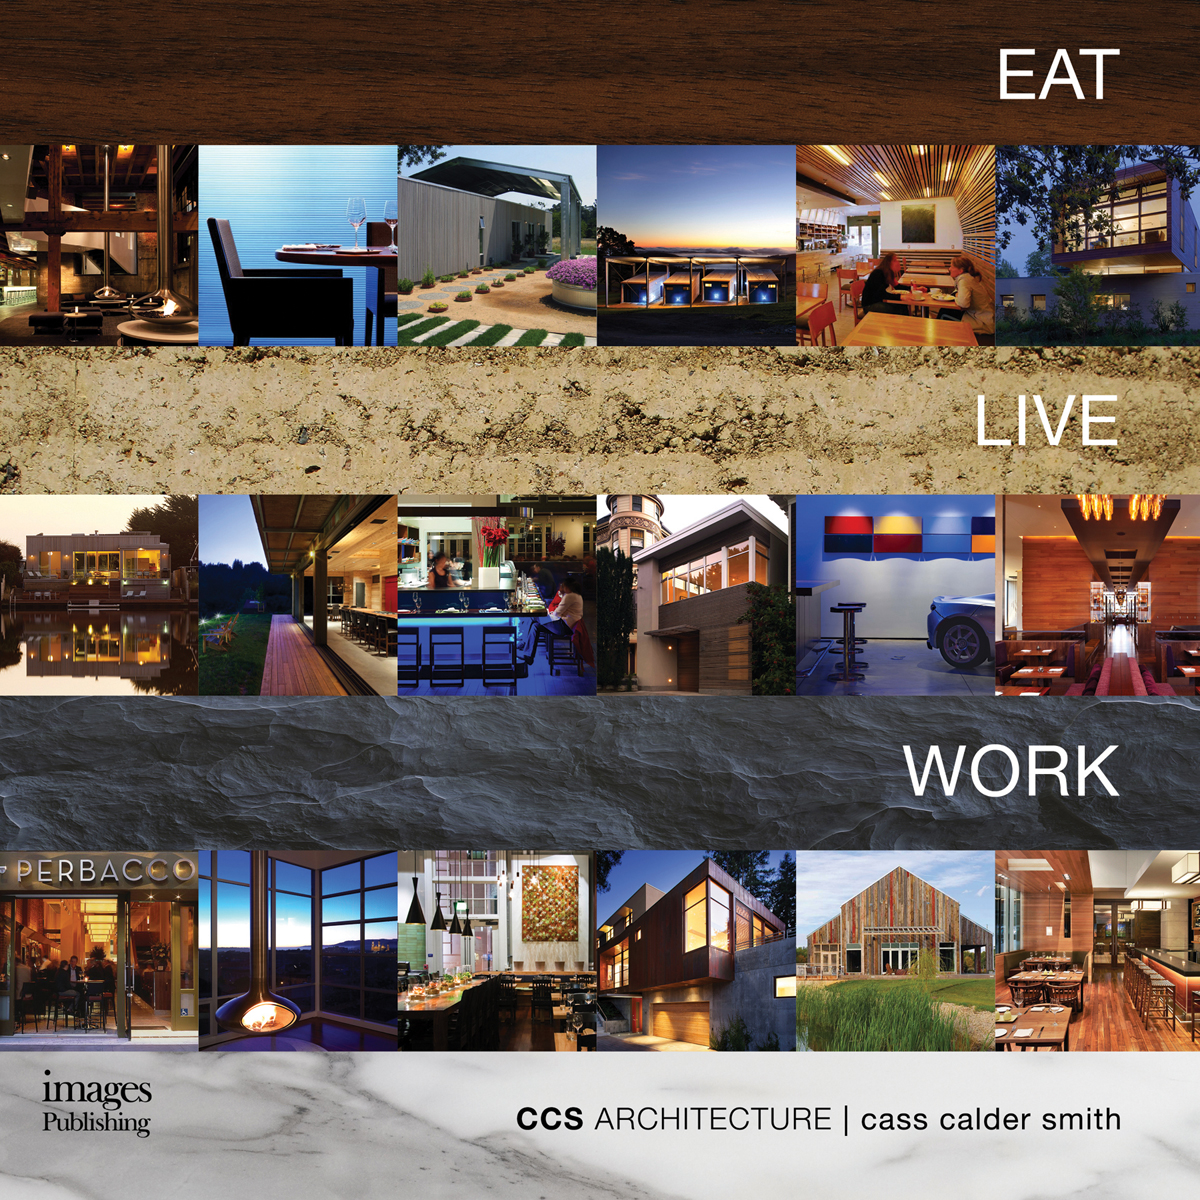 Eat Live Work - CCS Architecture: Monograph